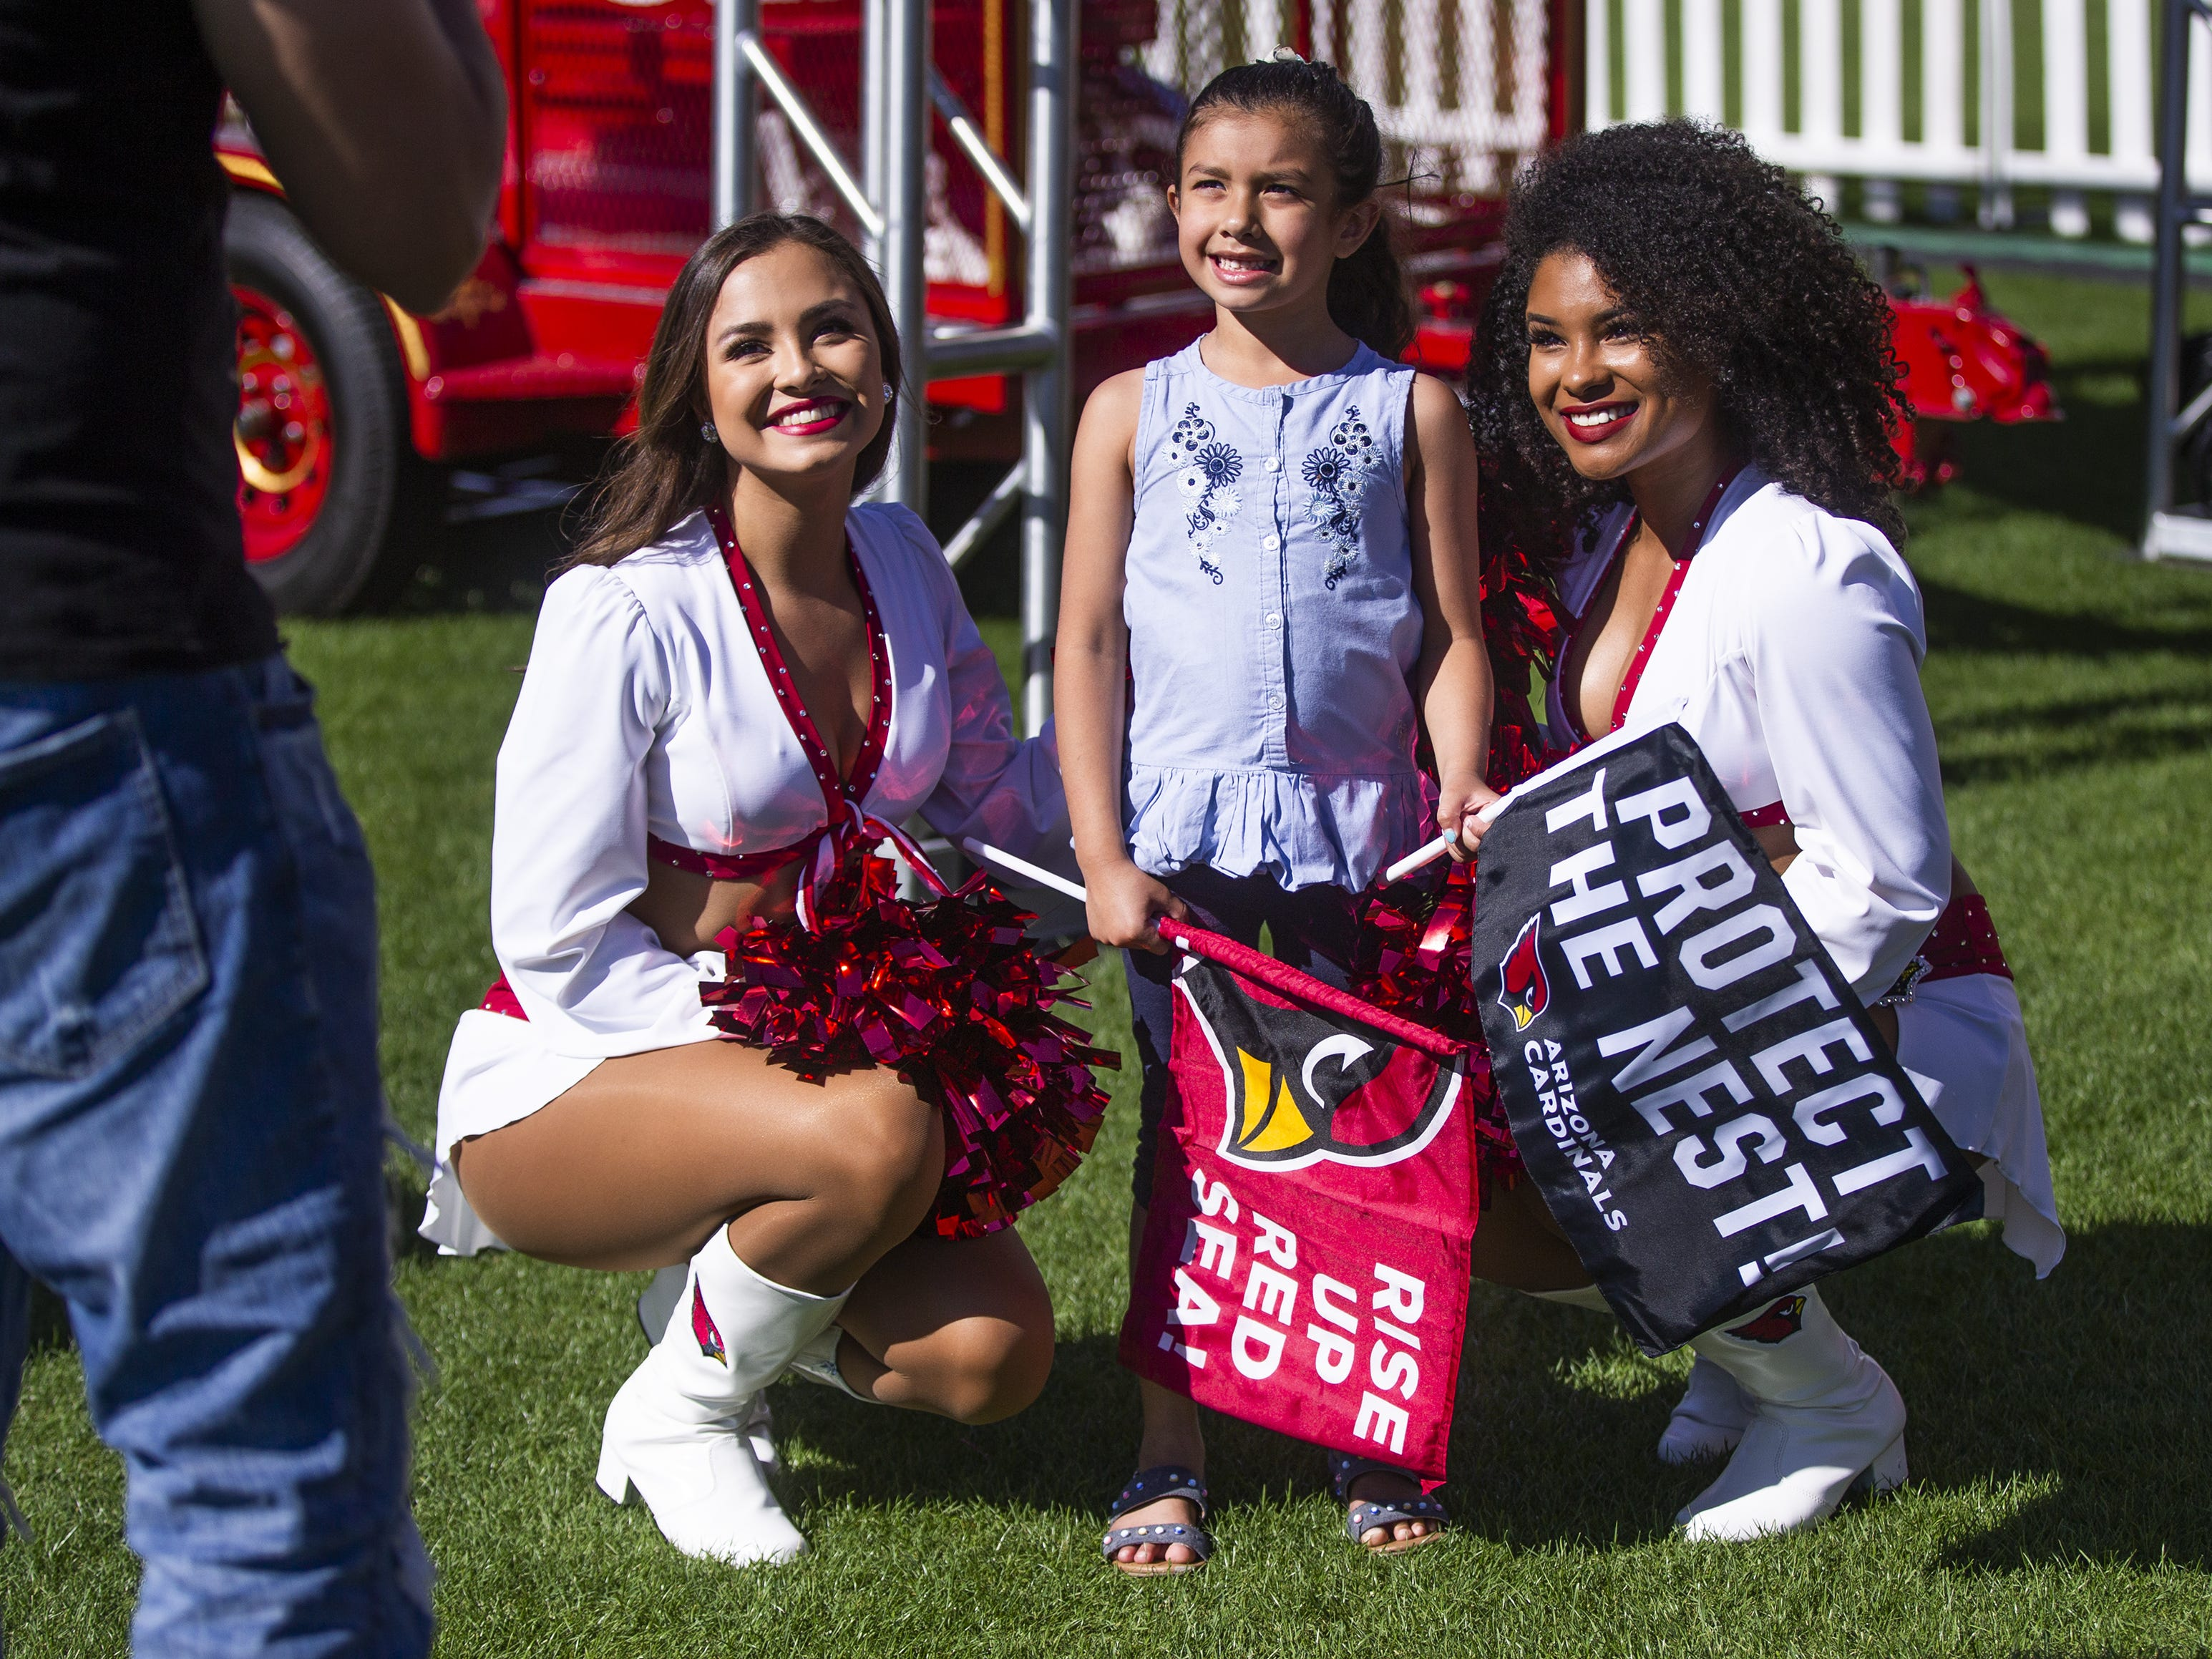 Arizona Cardinals cheerleaders Mandy, left, and Tequasia, right, pose as Basilio Gonzales takes a photo of his daughter, Madison, 5, at the NFL Draft party on the Great Lawn outside State Farm Stadium, Thursday, April 25, 2019.